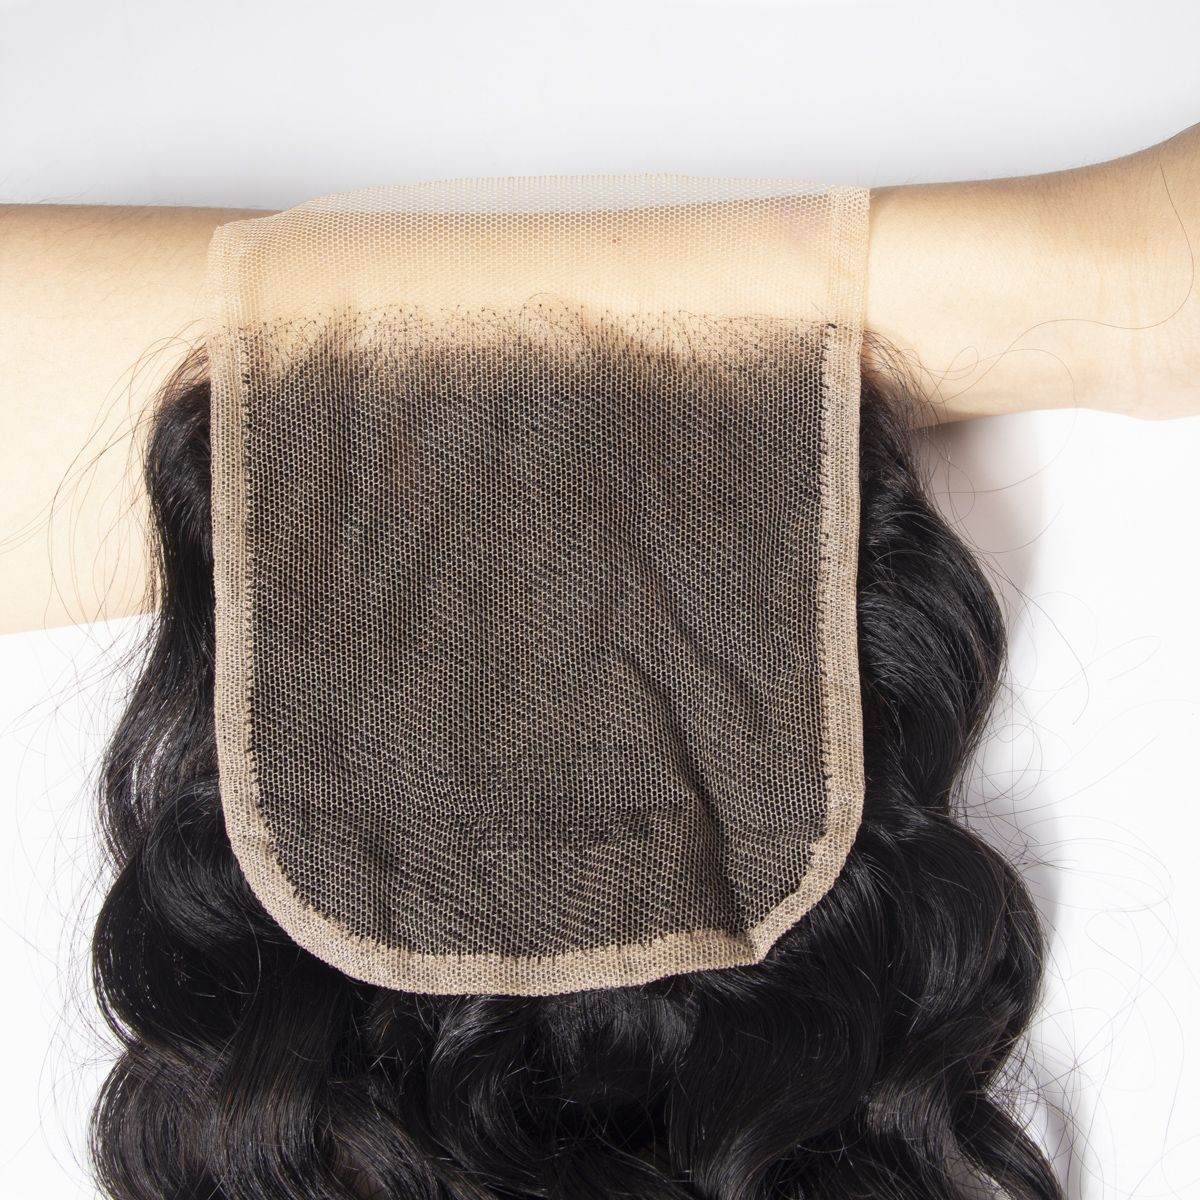 Tinashe hair water wave transparent lace closure